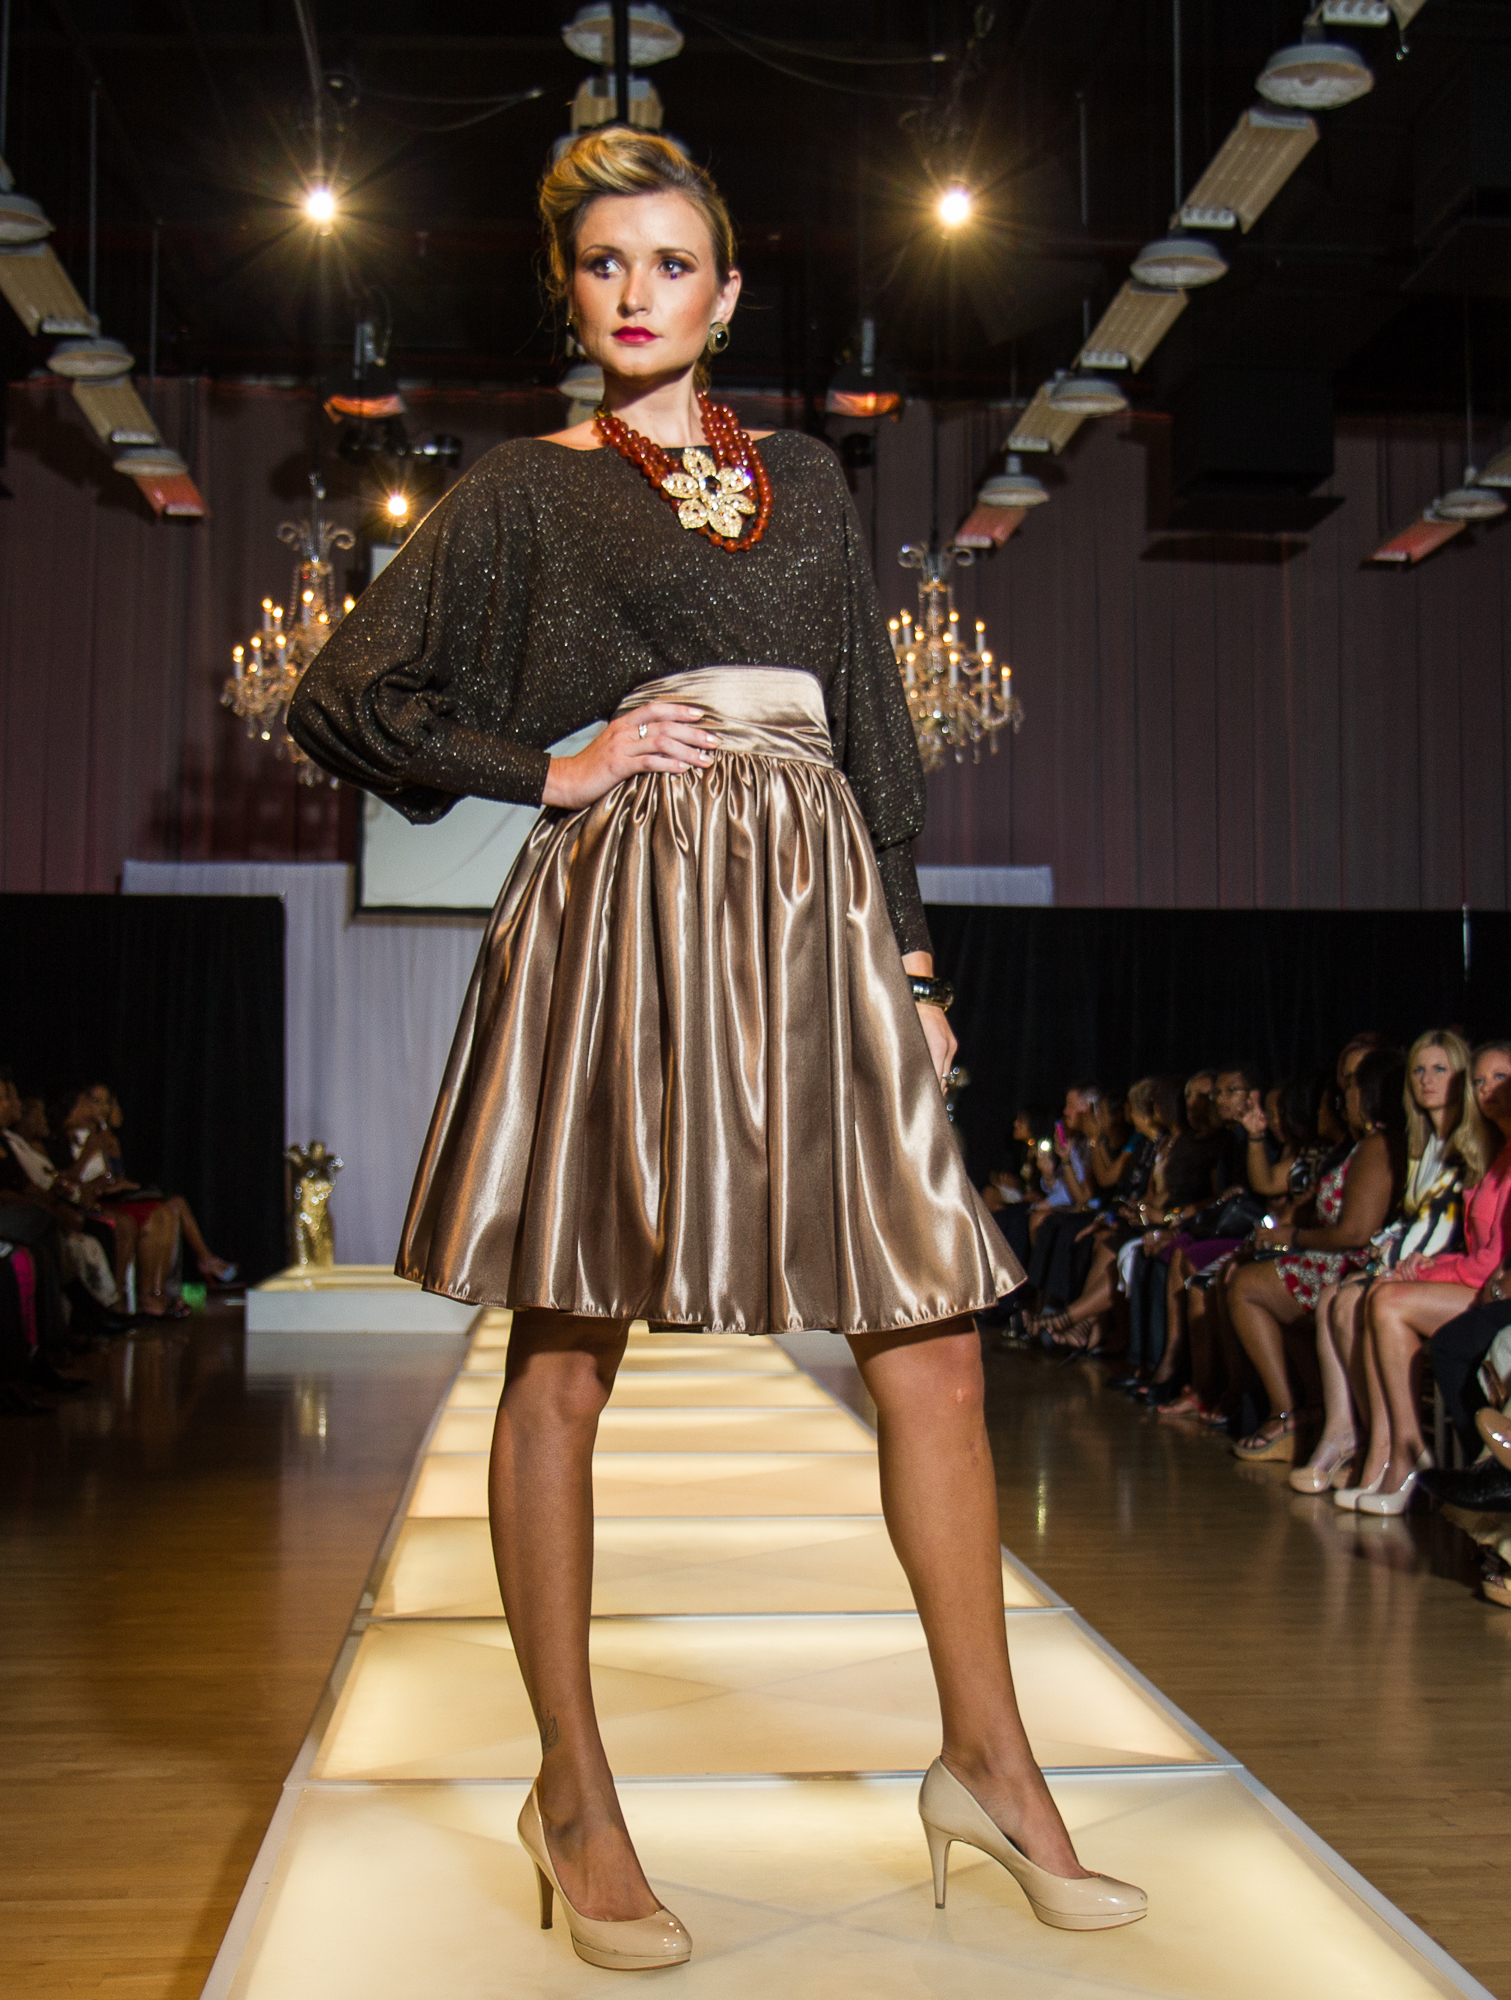 The Bishop Blouse and Skirt